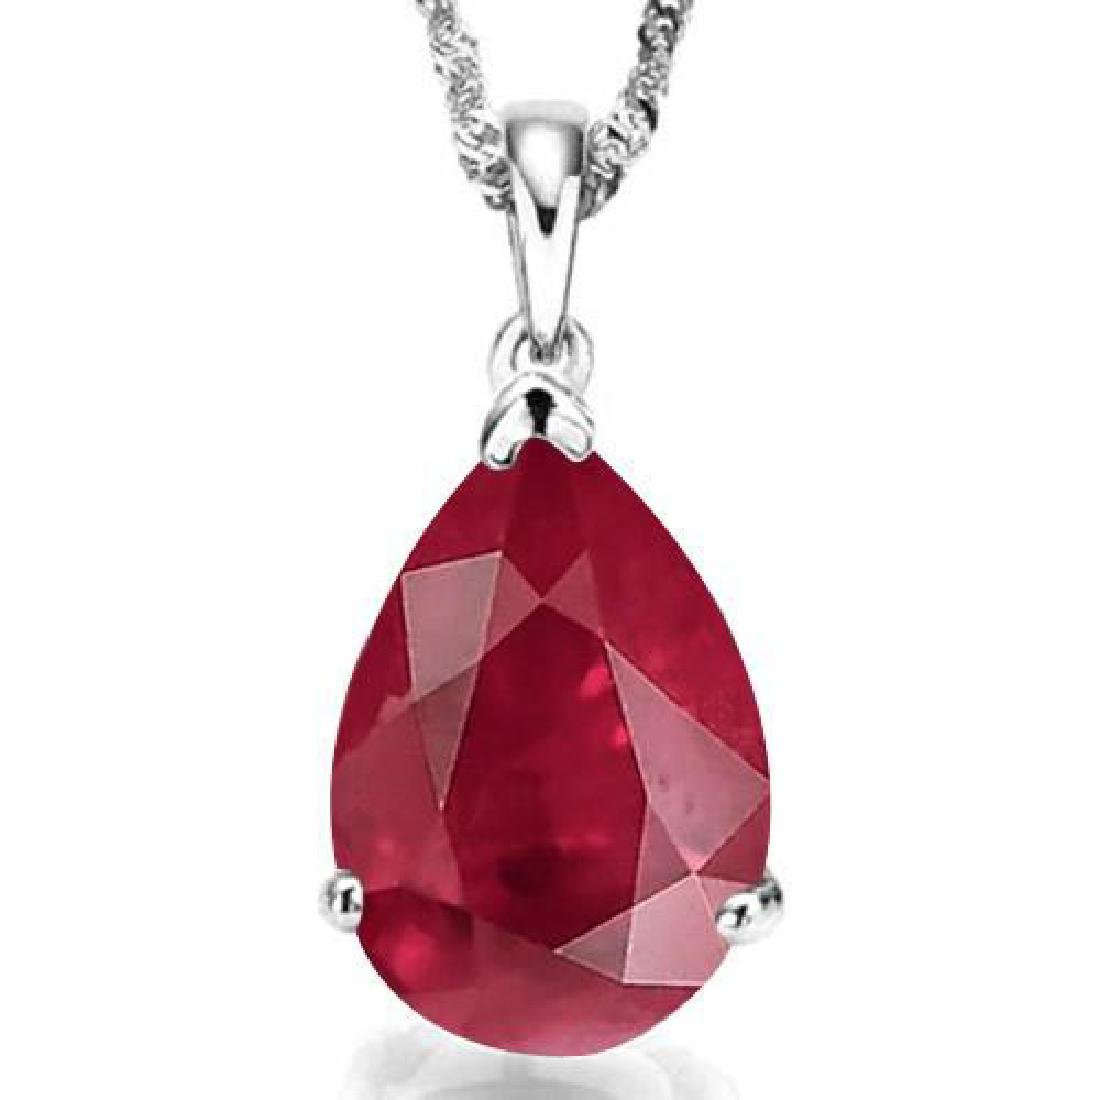 1.0 CTW RUBY 10K SOLID WHITE GOLD PEAR SHAPE PENDANT